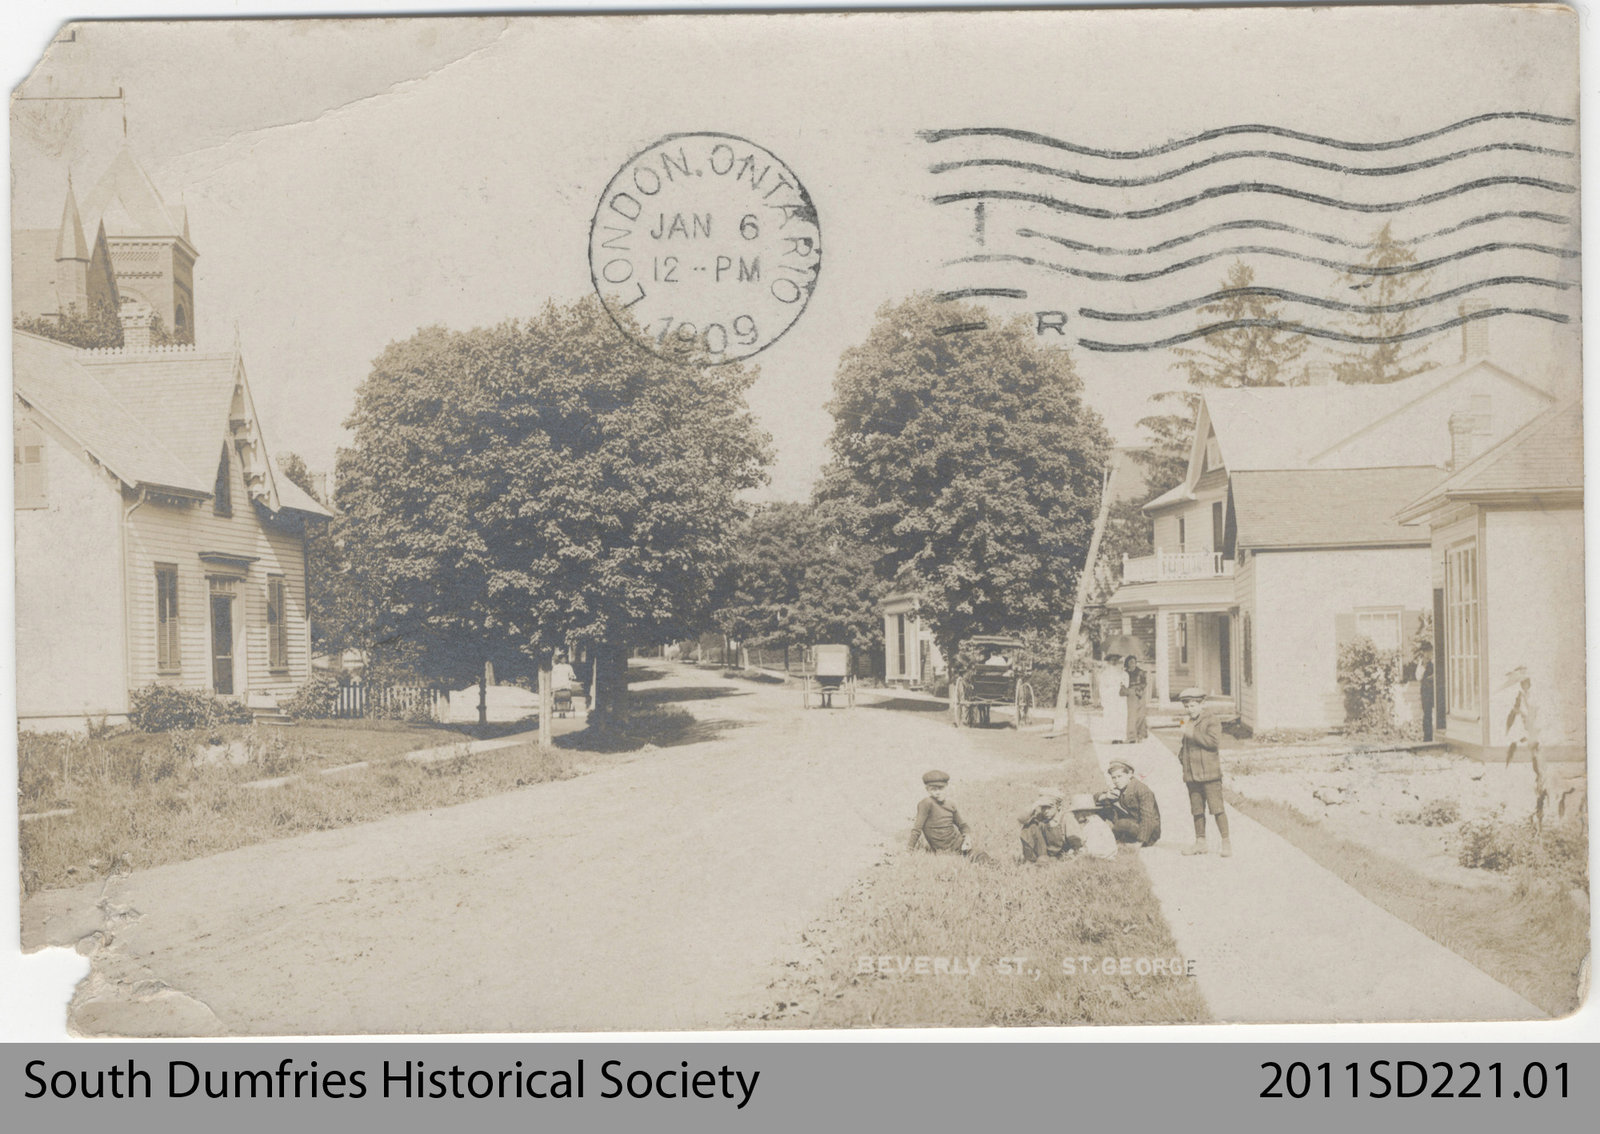 Full Image View Beverly Street In St George County Of Brant Public Library Digital Collections